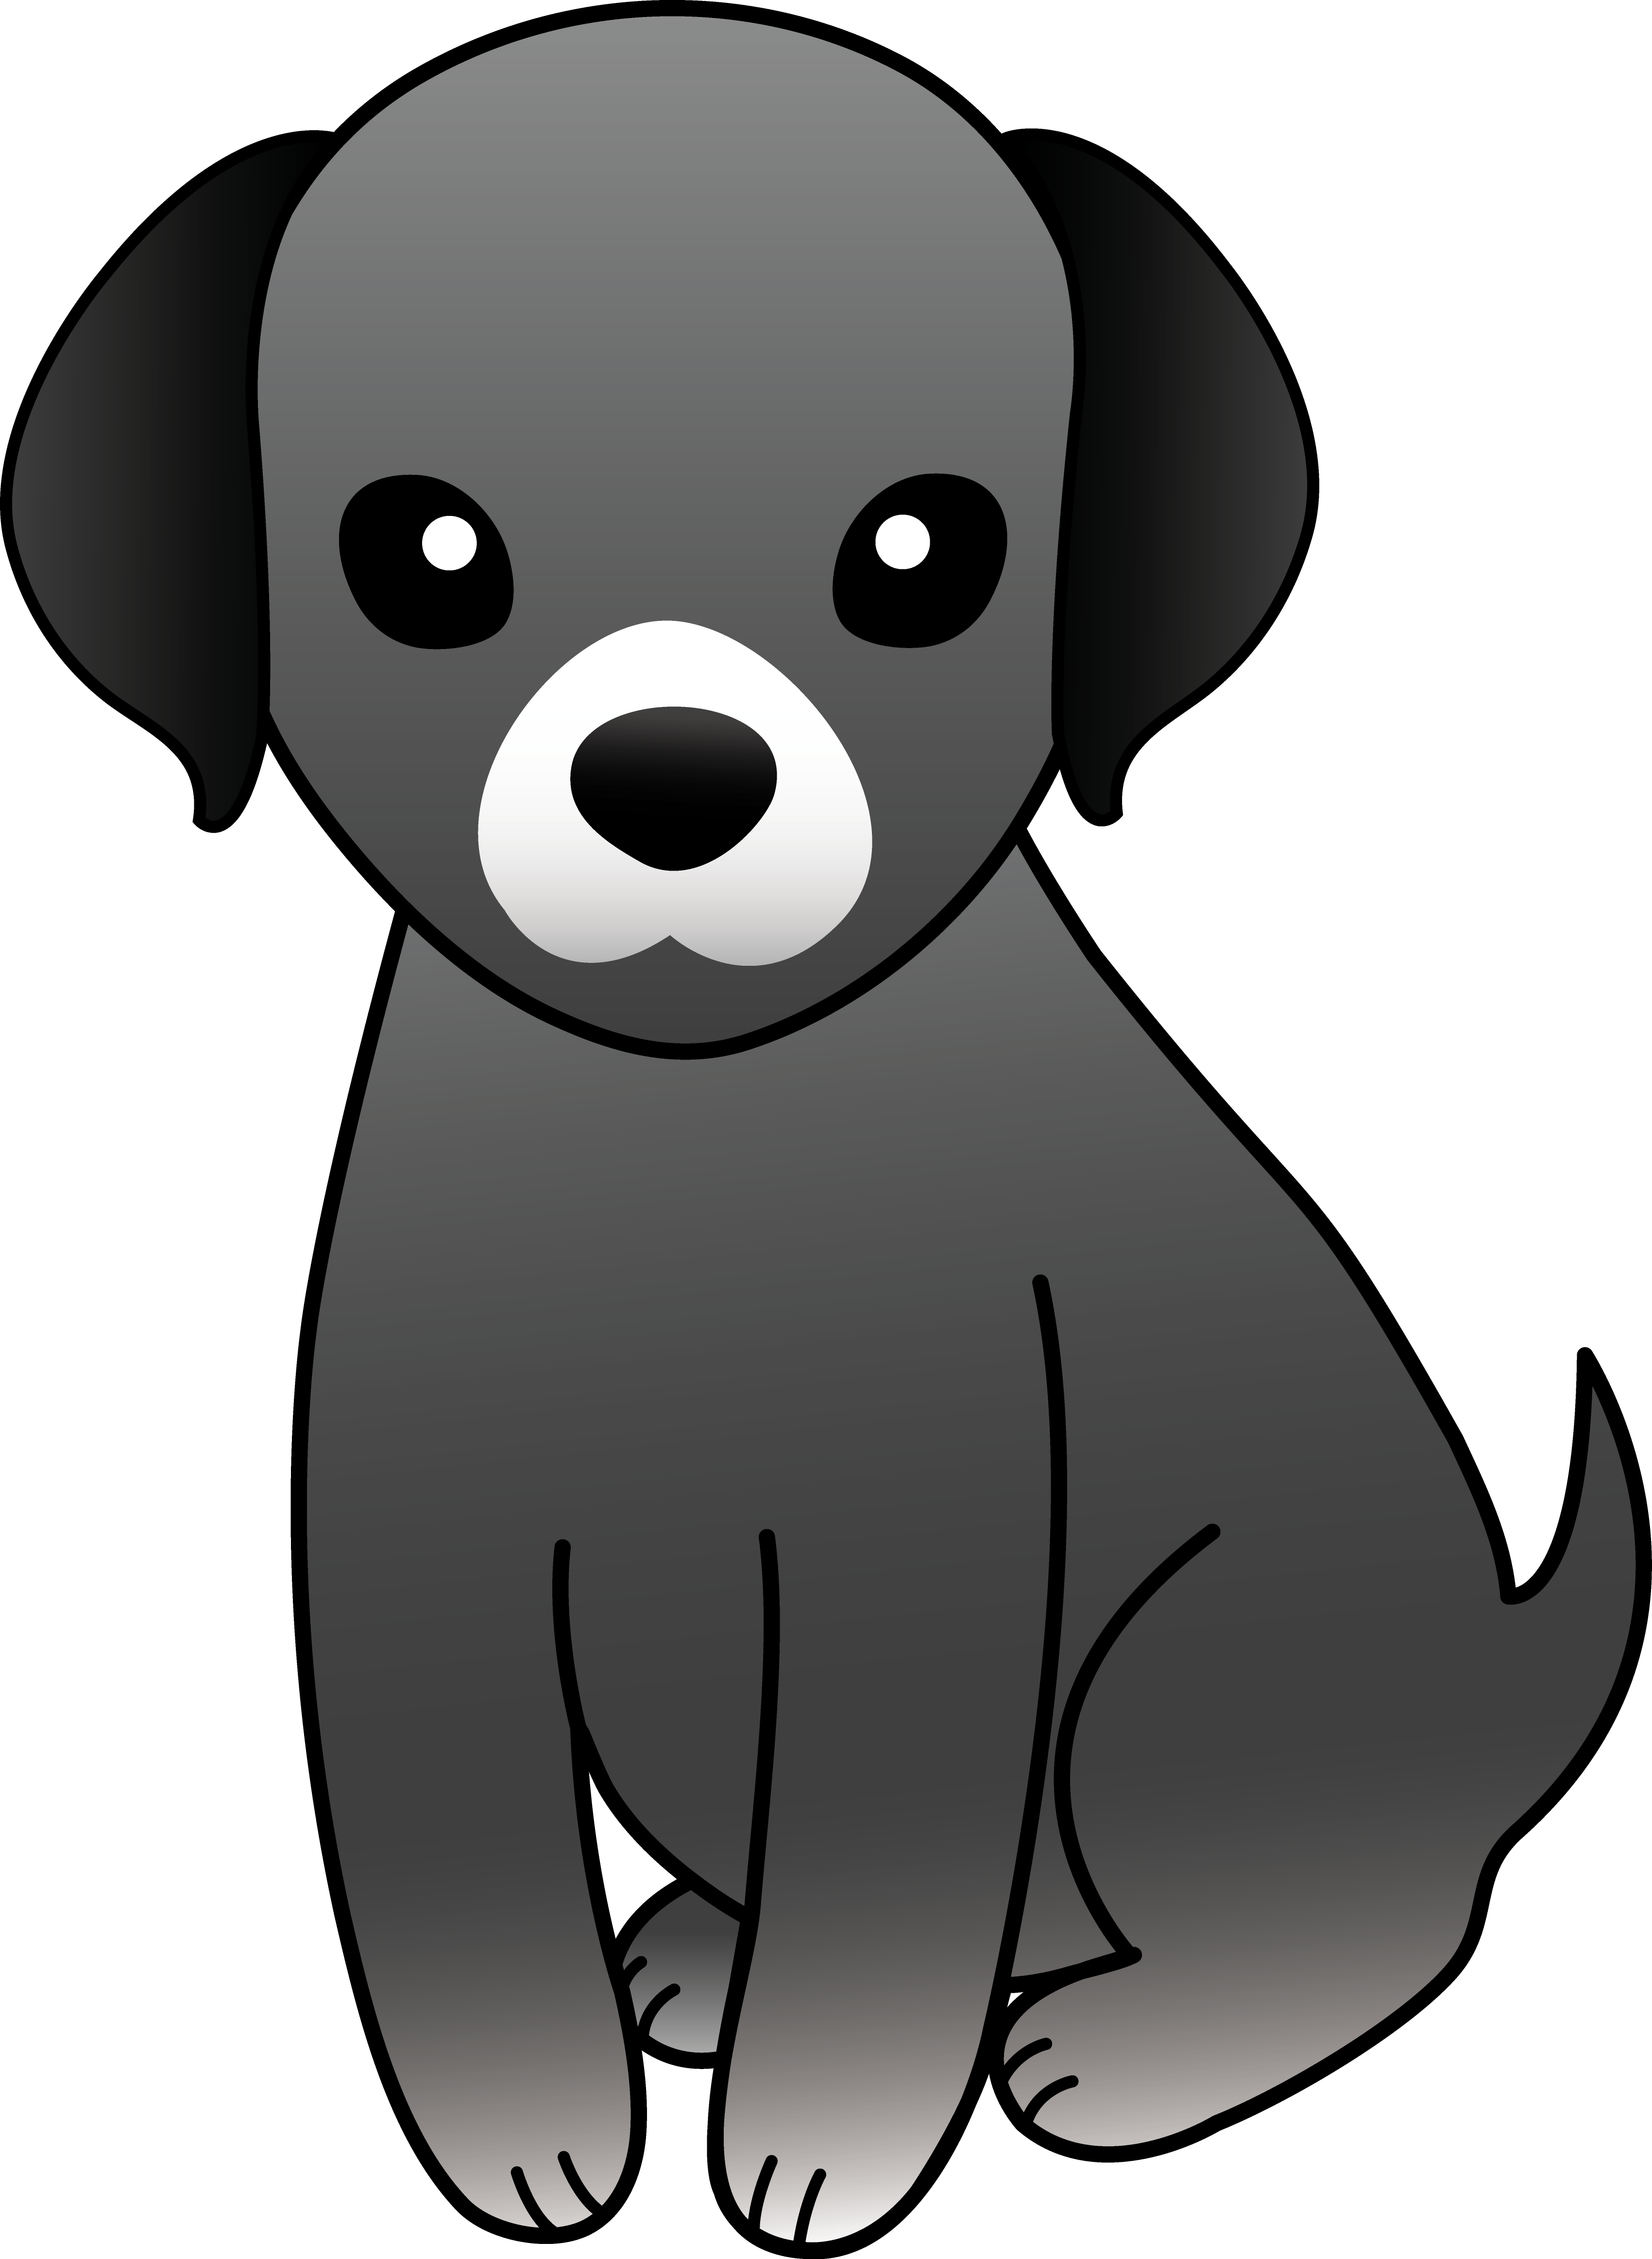 Black dog group. Pet clipart small pet